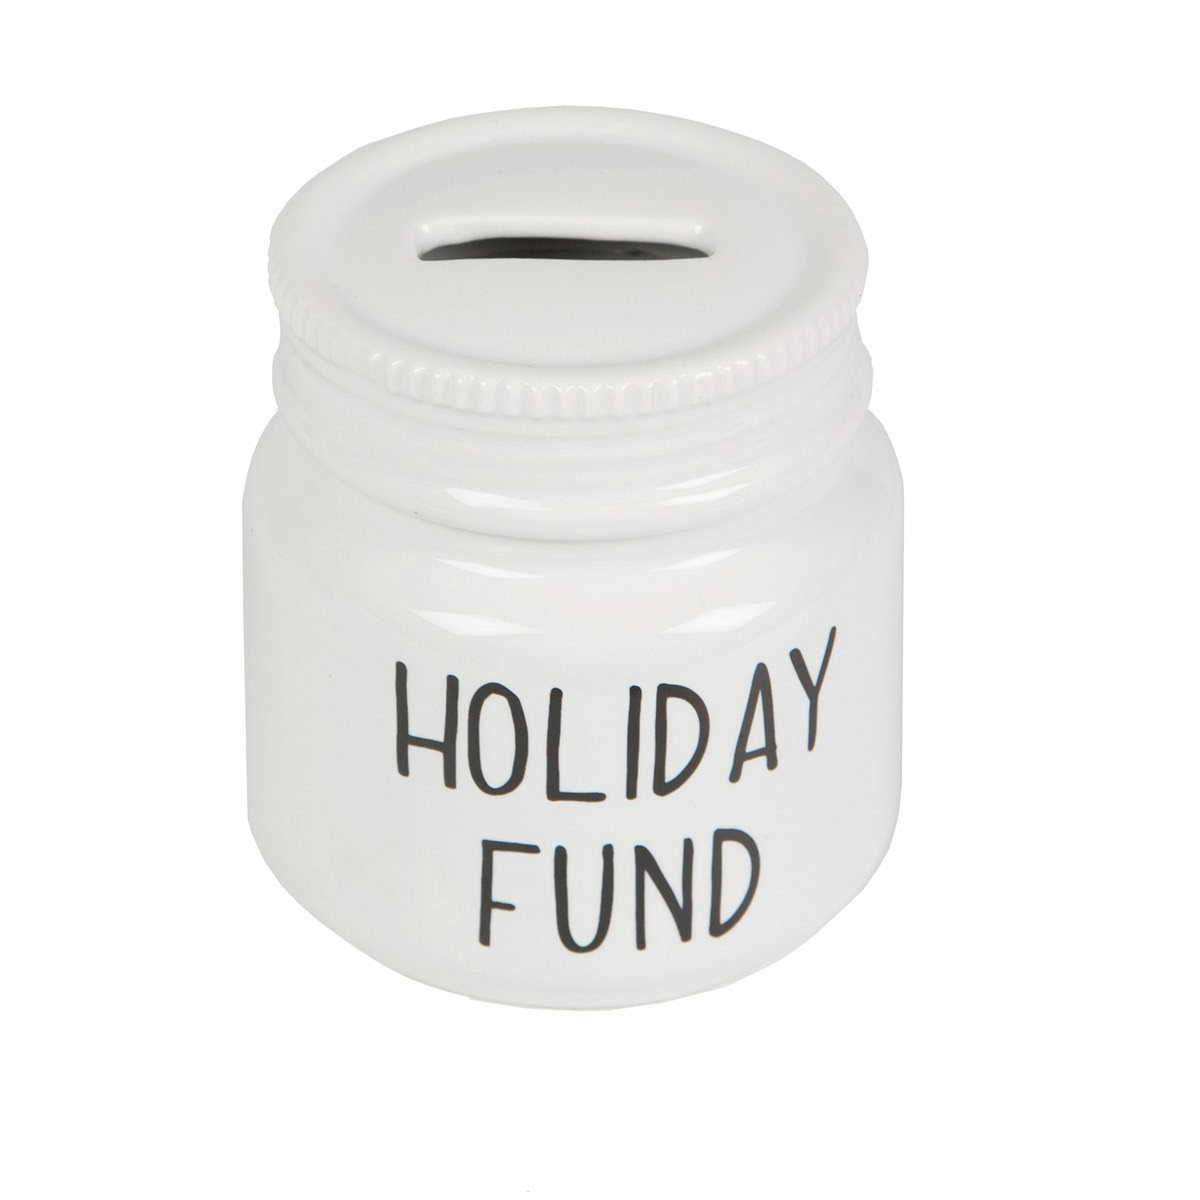 Image result for HOLIDAY FUND